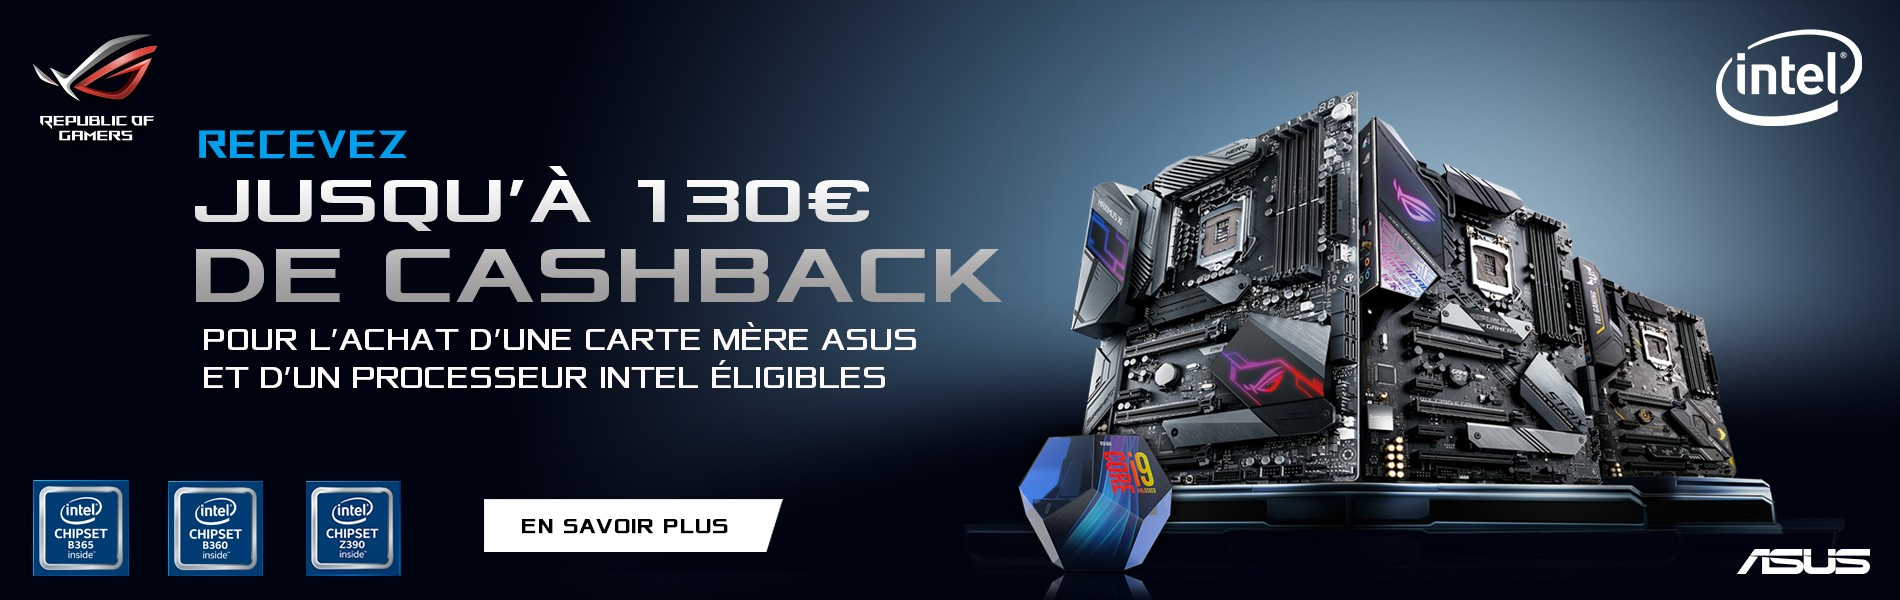 PROMO ASUS BANNER